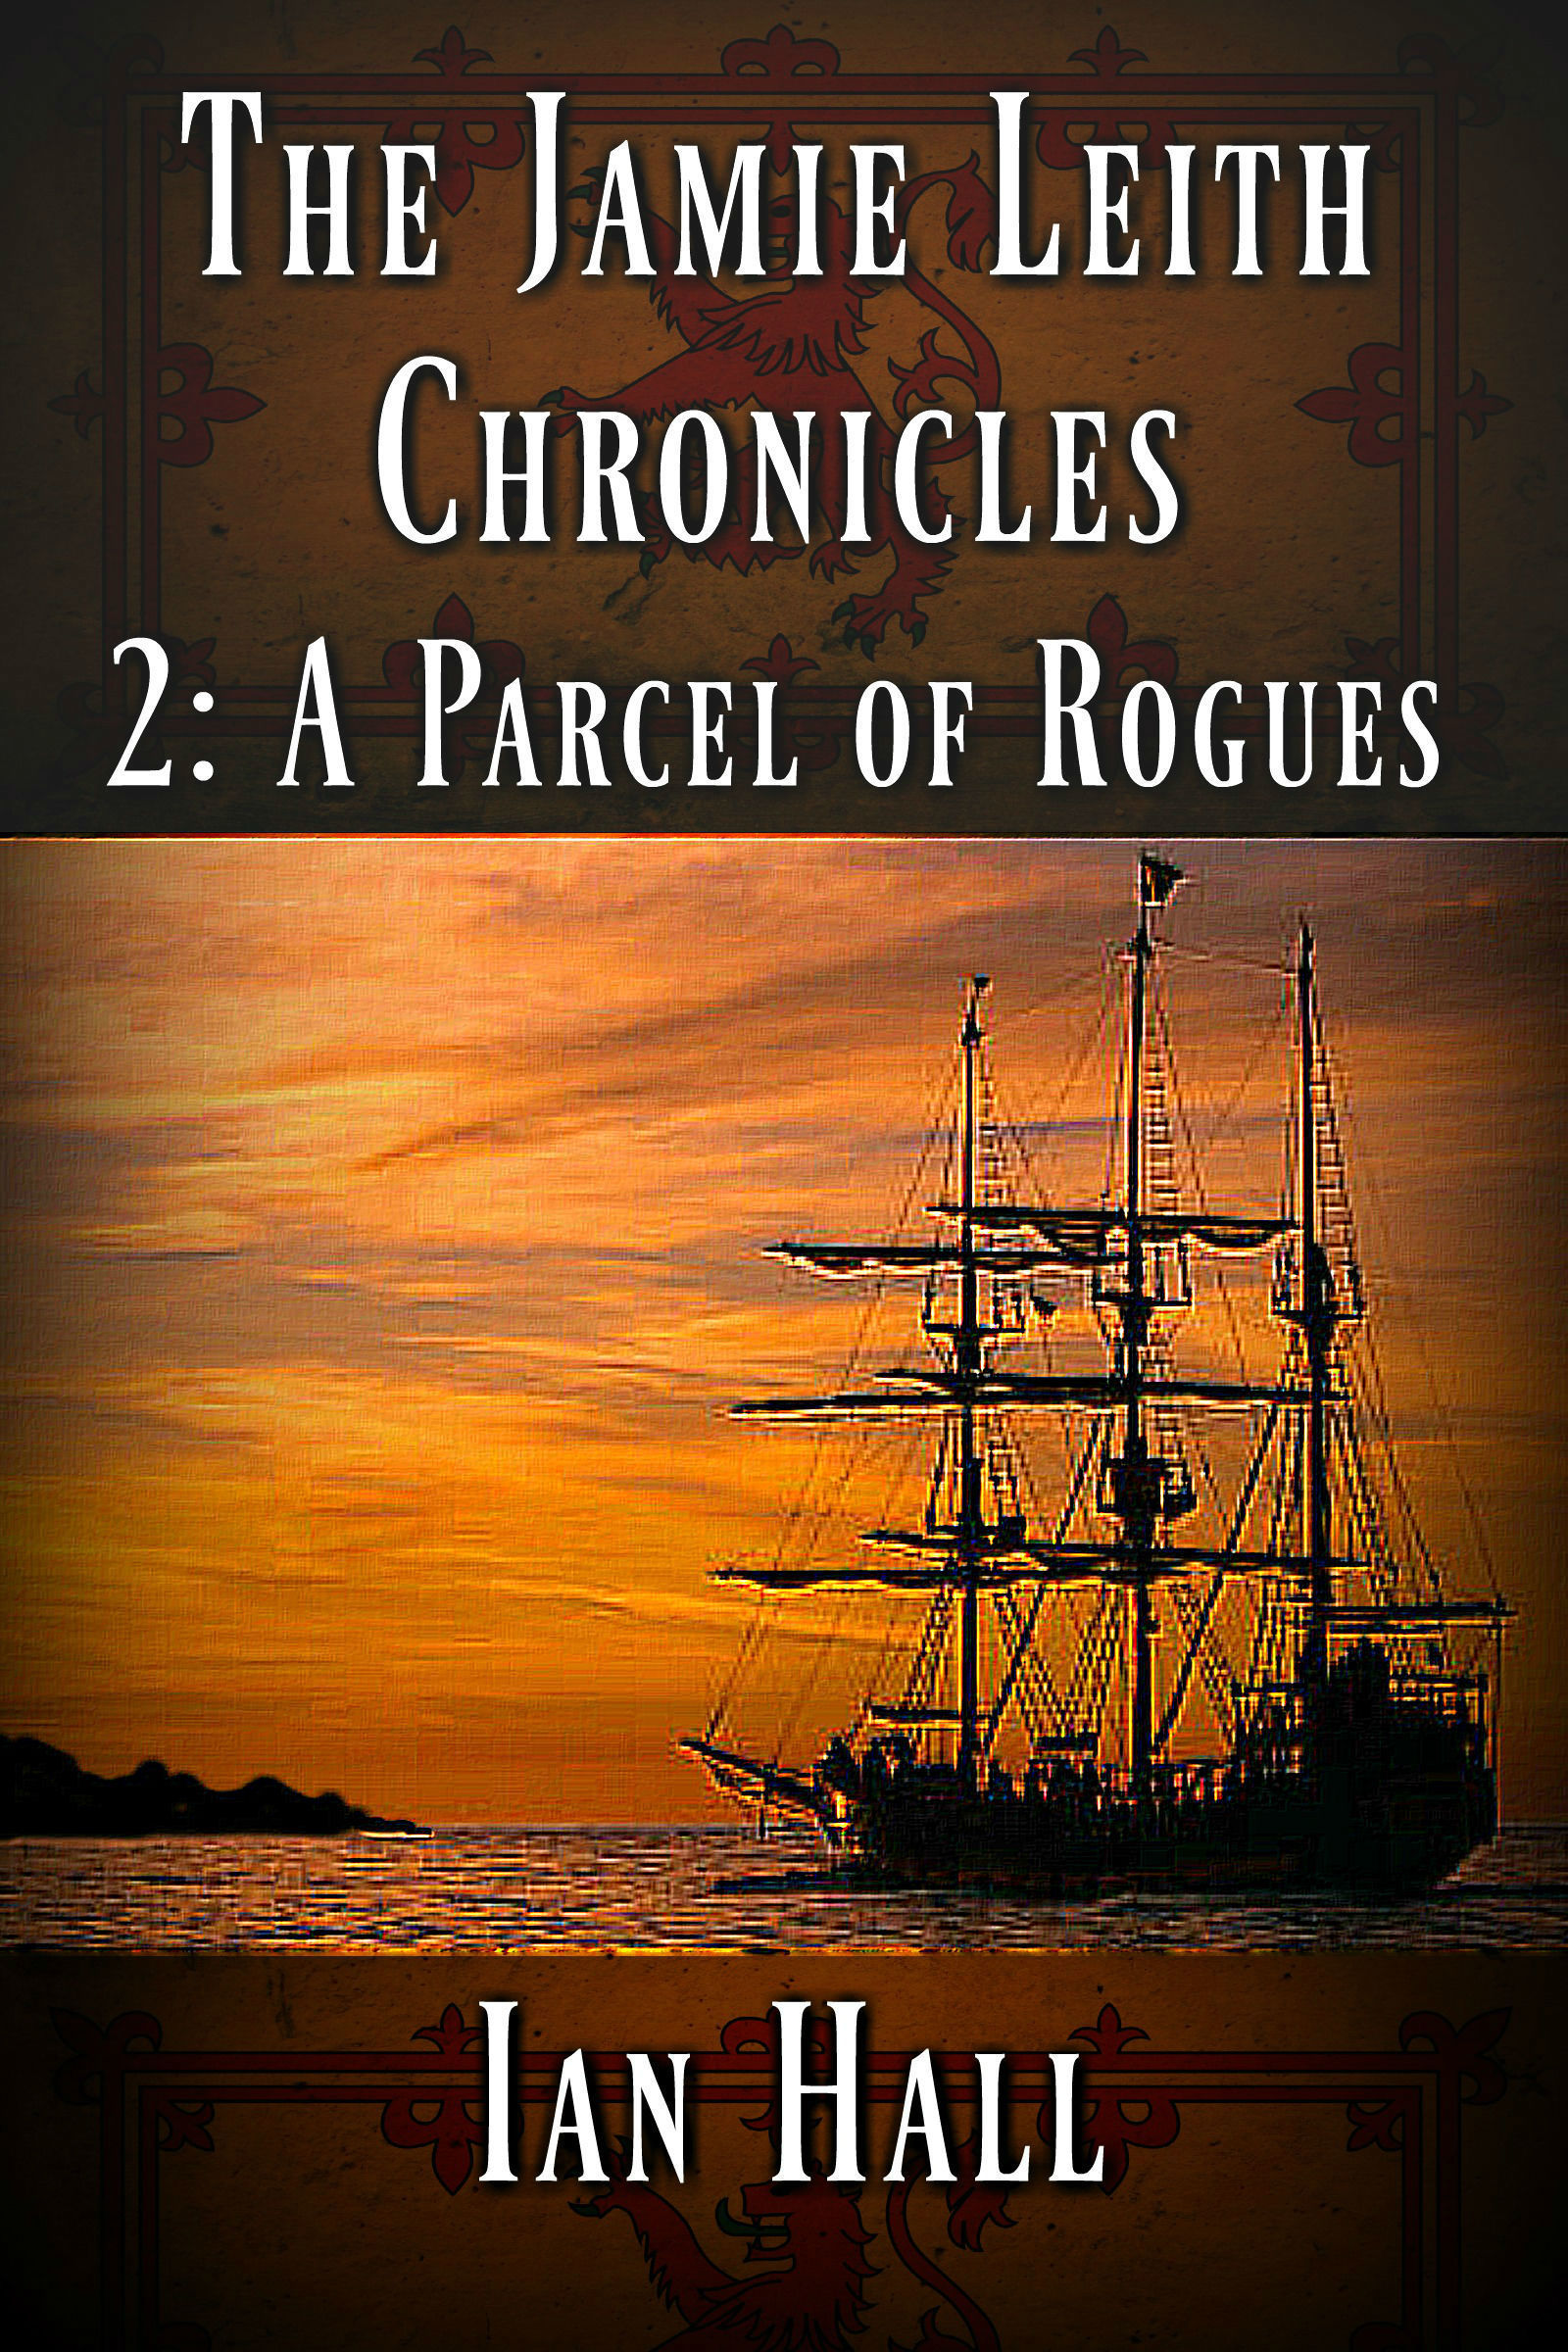 The Jamie Leith Chronicles 2: A Parcel of Rogues Ian Hall